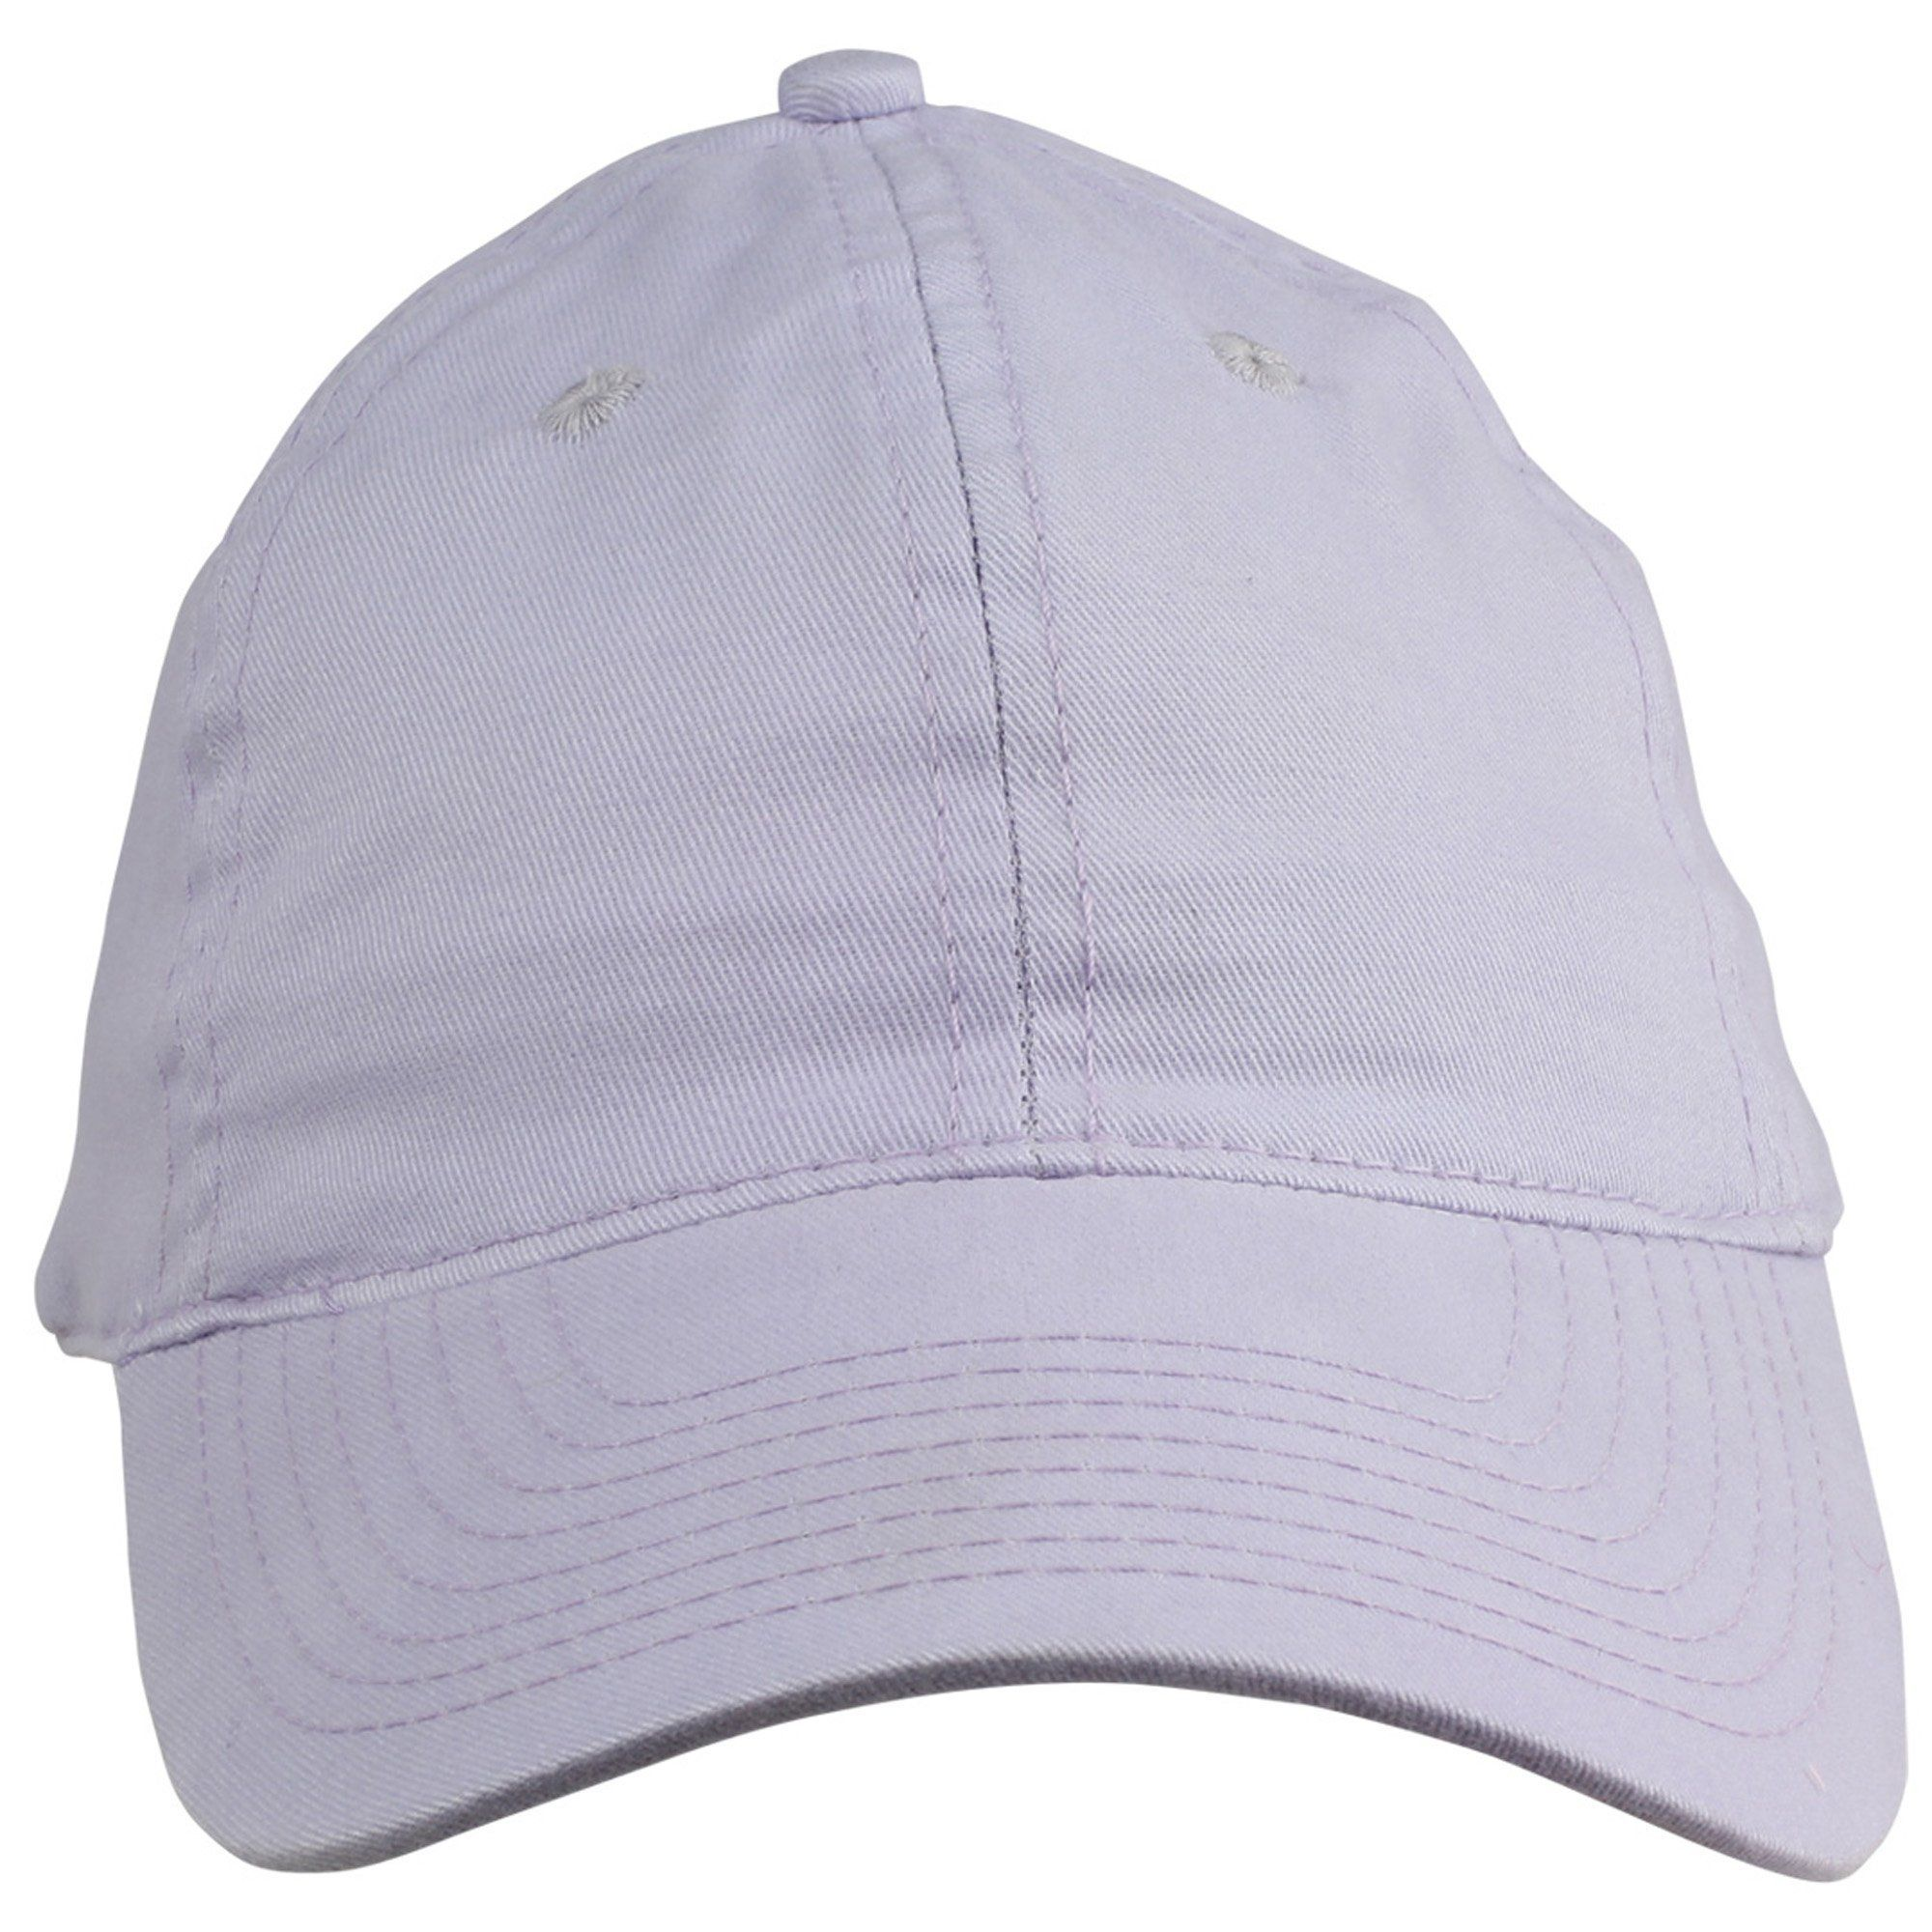 23b815756135e Womens Pastel Lovers Cap - Adjustable Hat with Velcro Closure in ...